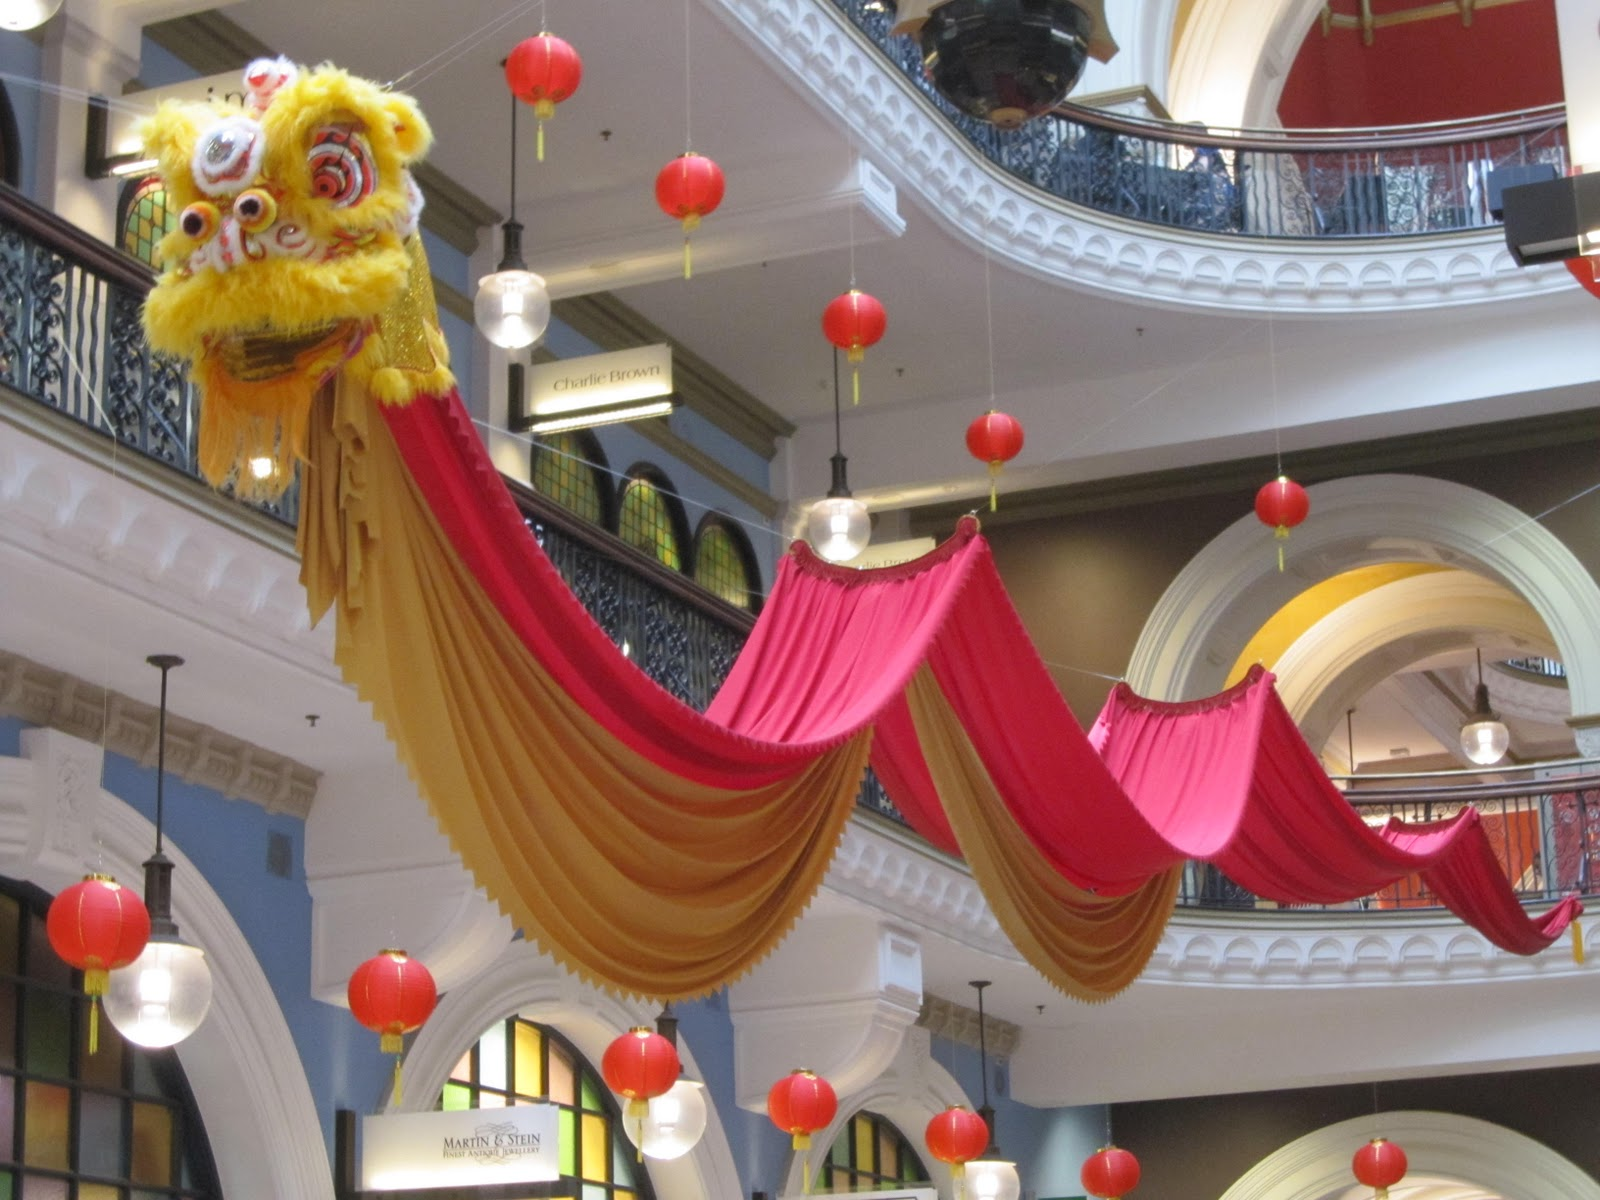 Chinese Dragon Decor Sydney City And Suburbs Queen Victoria Building